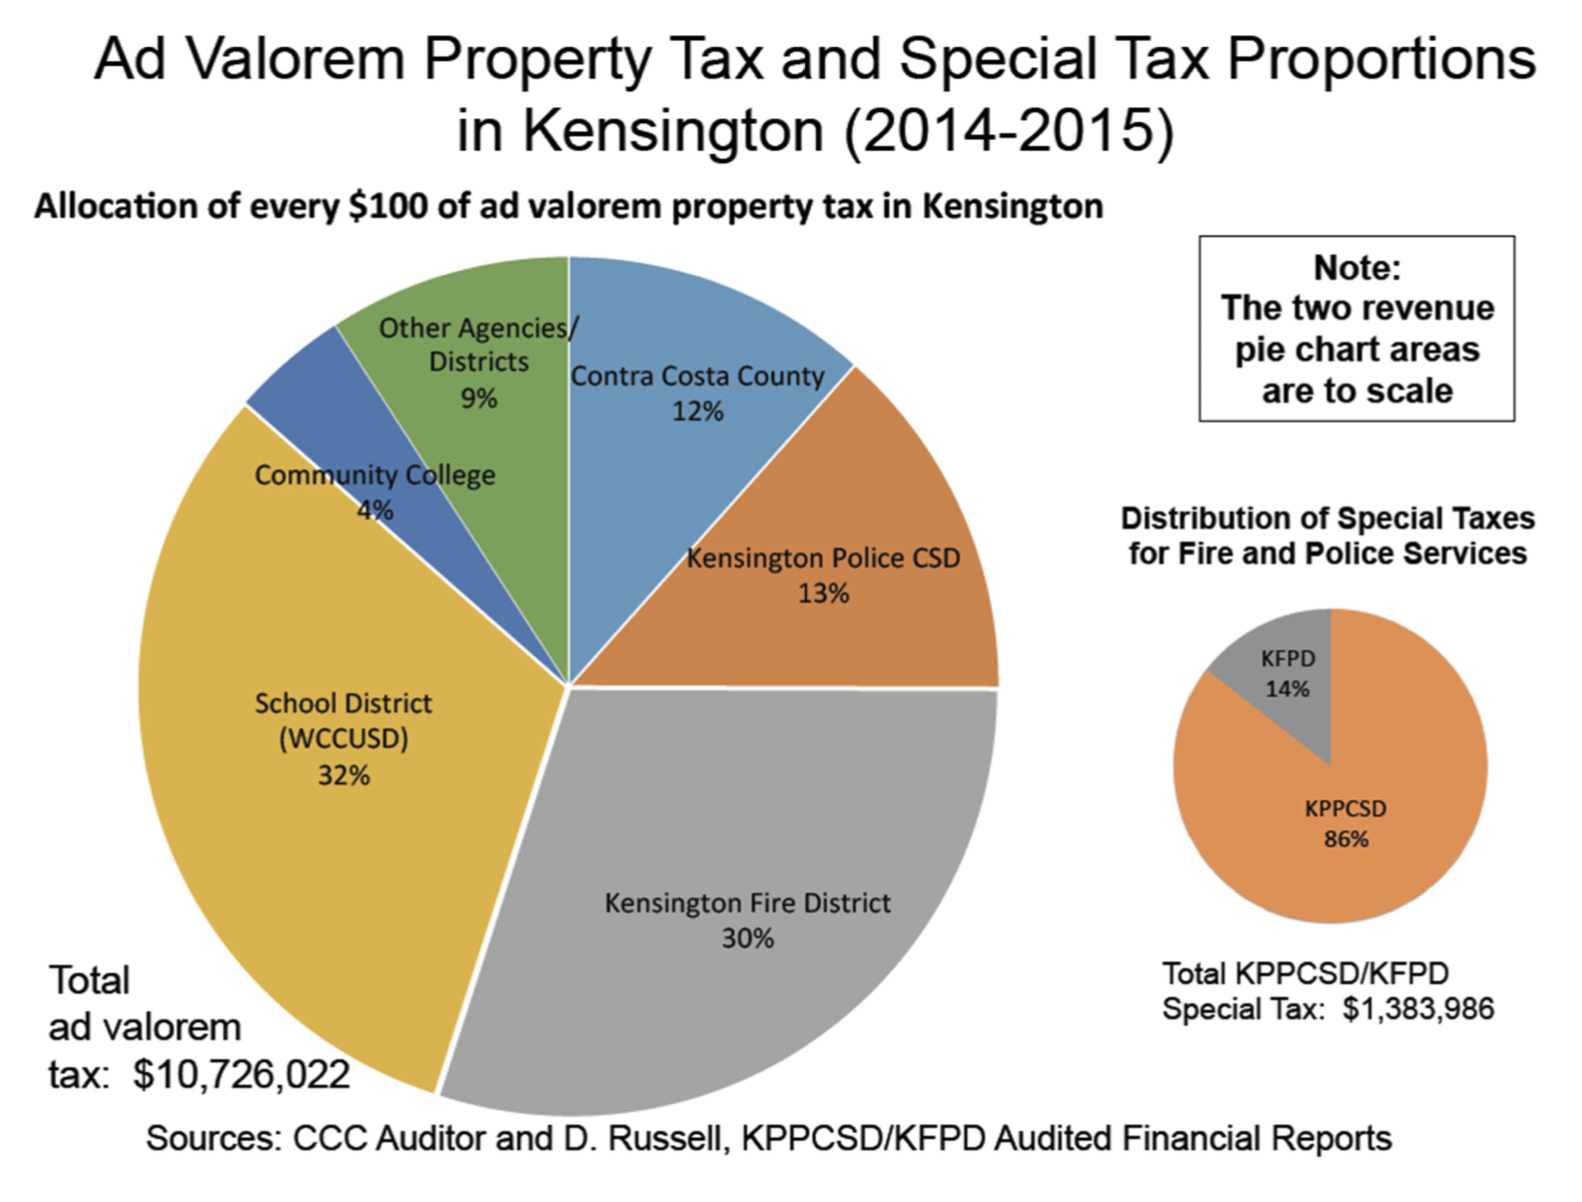 """Breakdown of Ad Valorum Taxes, by <a href=""""https://www.kppcsd.org/ad-hoc-committee-documents"""">2016 Ad hoc Committee</a> (pg. 78)"""